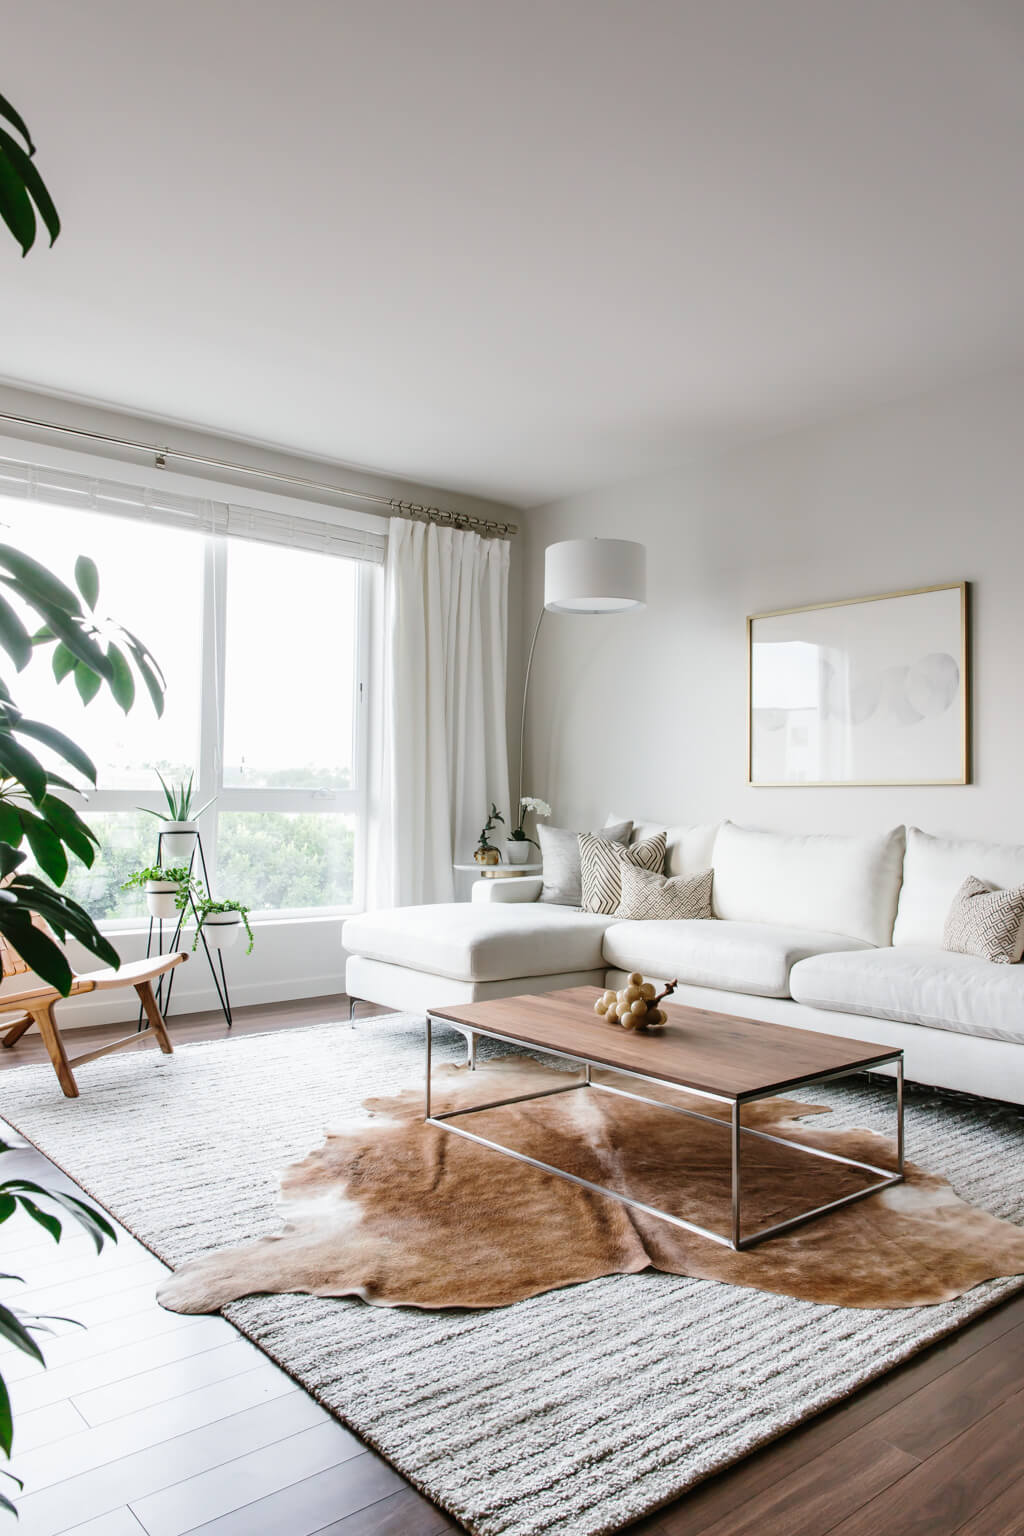 Take a tour of my modern and minimalist living room. My interior design style is a blend of minimalism, mid-century modern, Scandinavian and SoCal vibes.